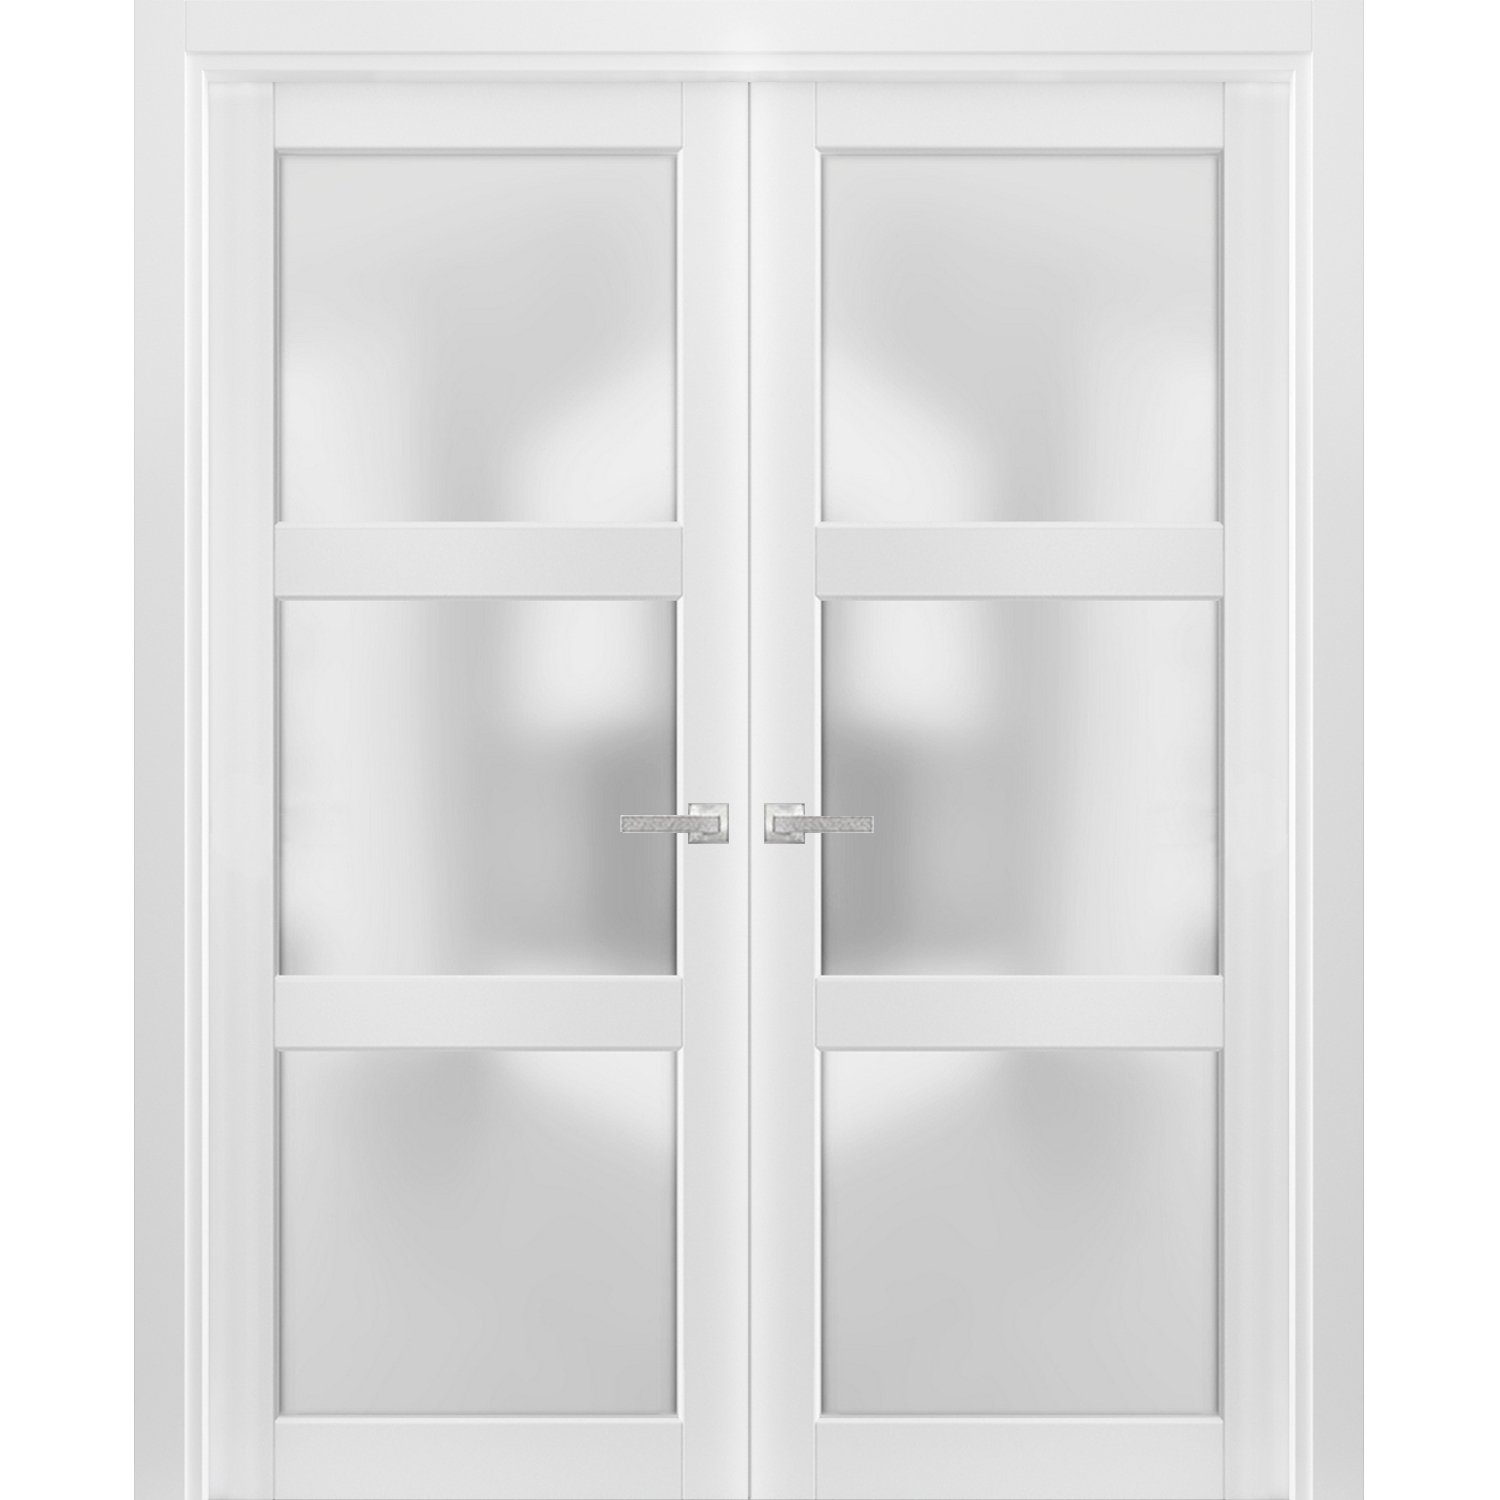 solid french double doors 72 x 80 inches frosted glass 3 lites